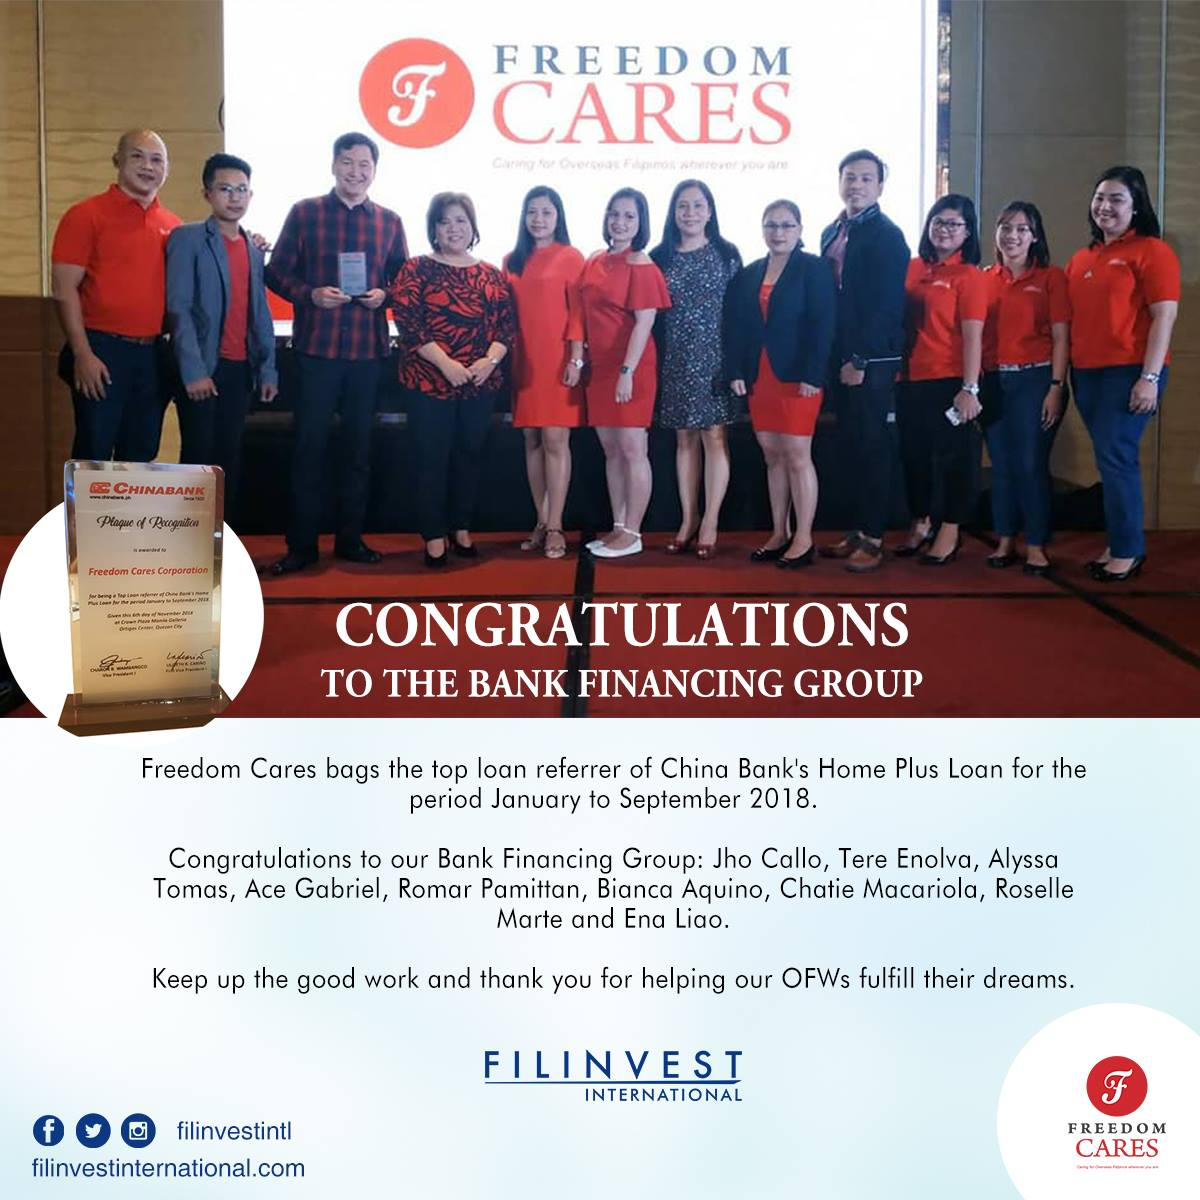 Hi Kabayan, Good News! We bag the top loan referrer of China Bank's Home Plus Loan for the period of January to September 2018. Congratulations to our Bank Financing group!  #Filinvest #FilinvestInternational #OFW https://t.co/LB277COaZR